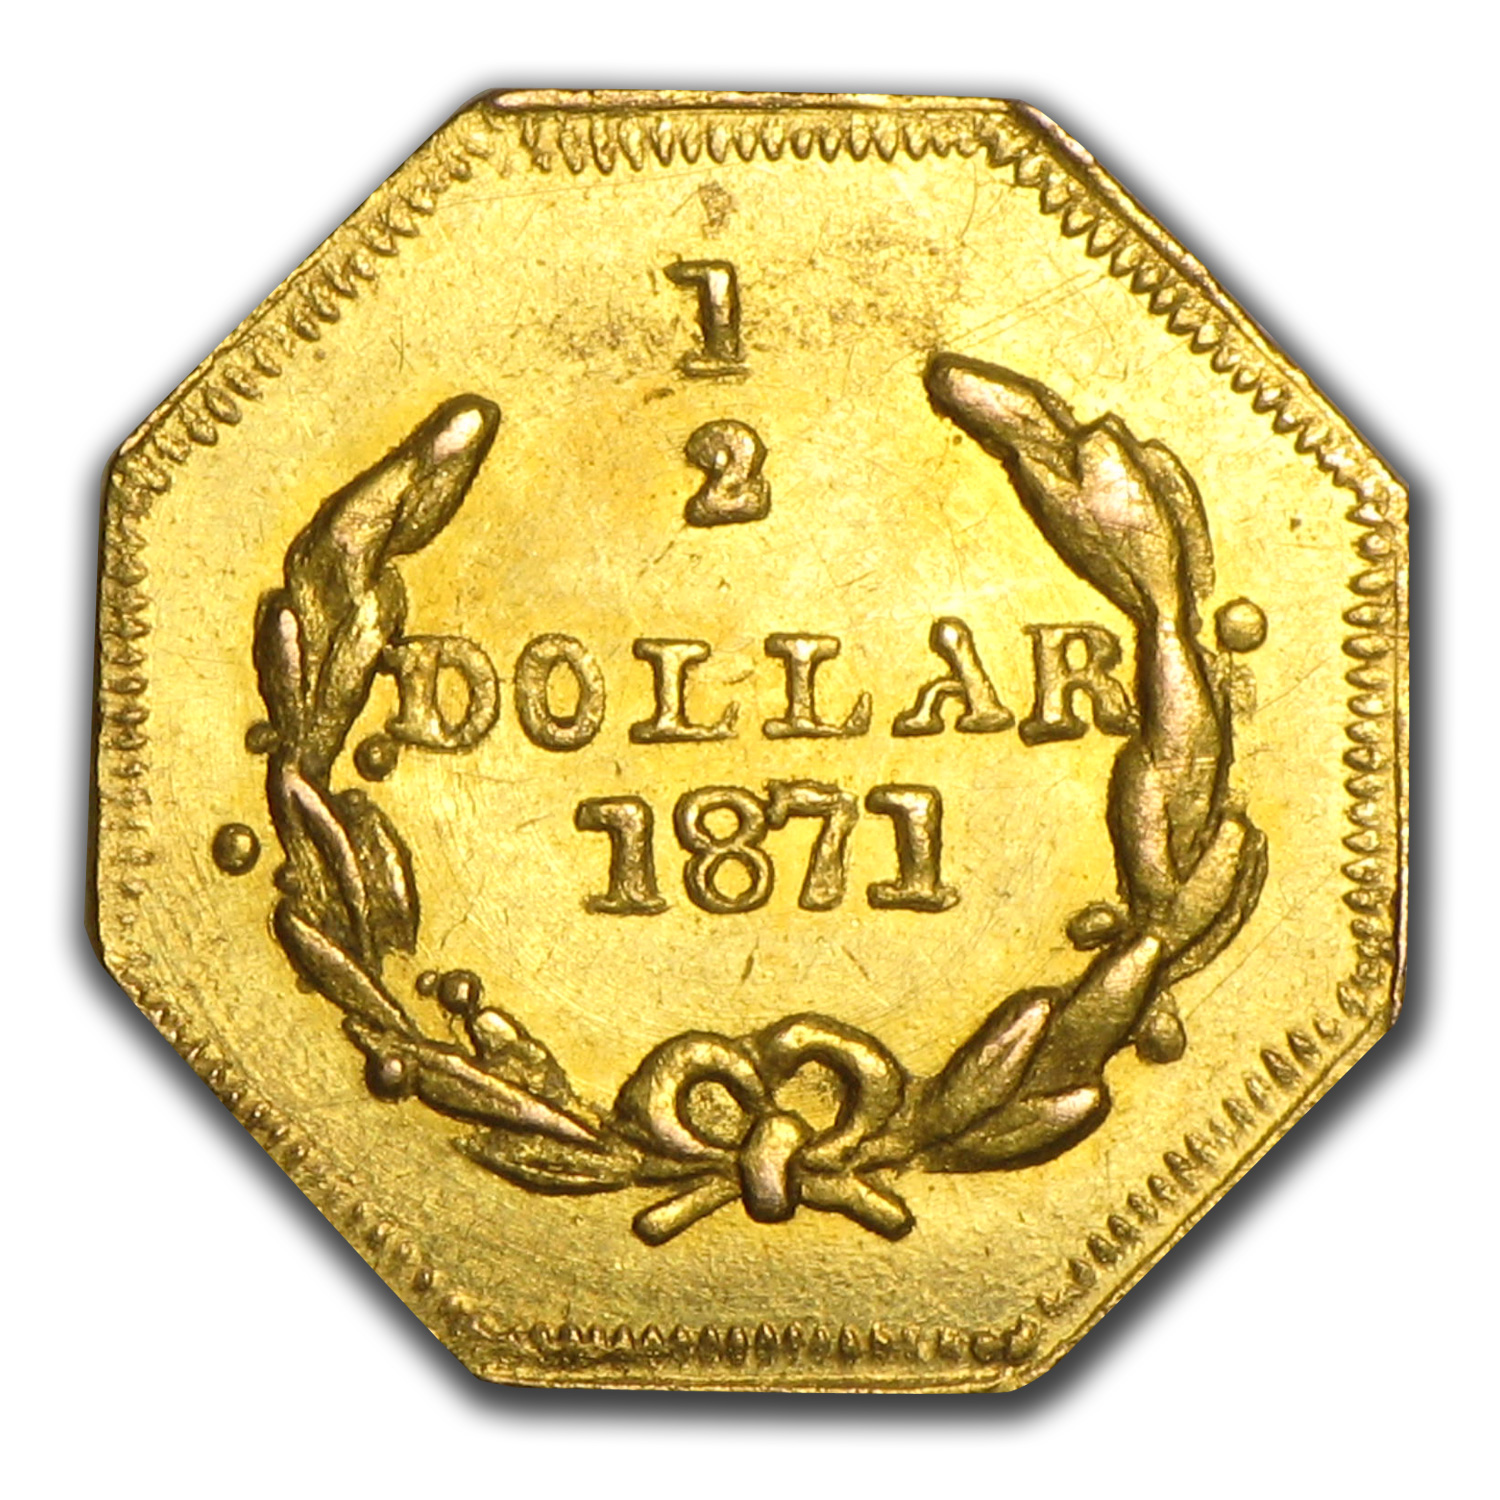 1871 Liberty Octagonal 50 Cent Gold MS-61 (BG-910)